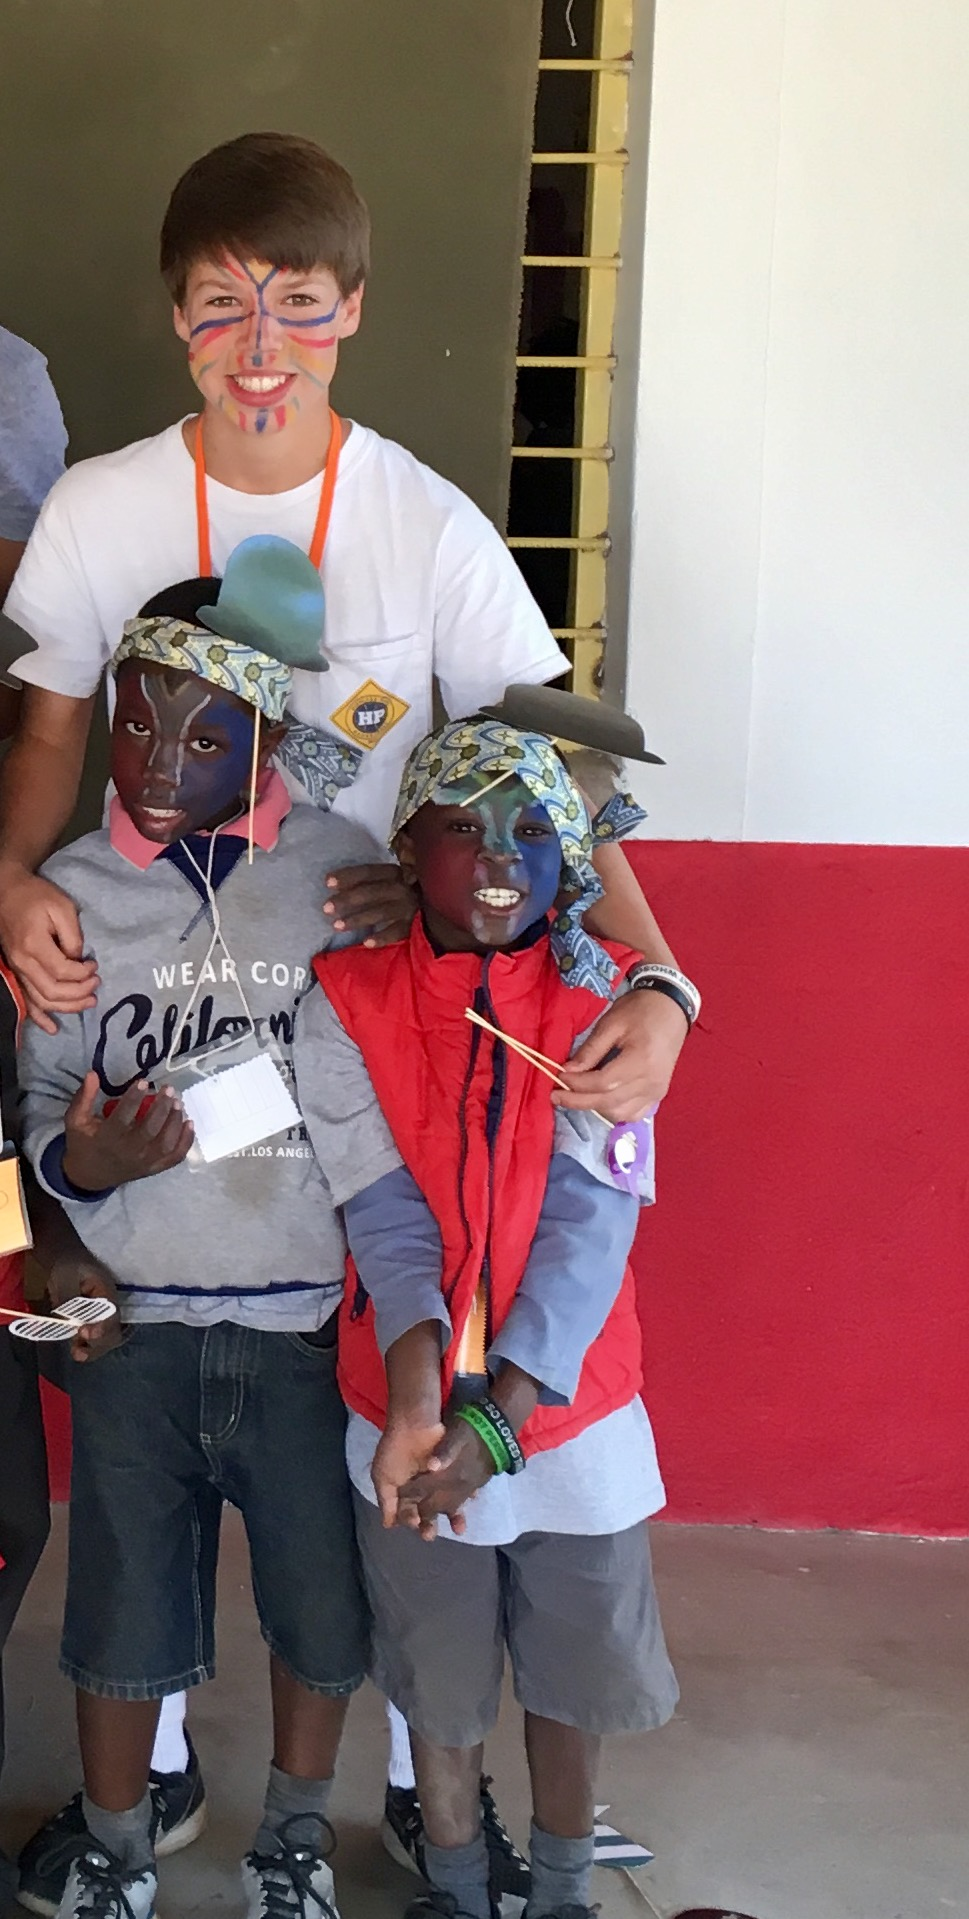 Lovemore (right) and Muyunda (left) with their Bible Camp counselor, Carson.